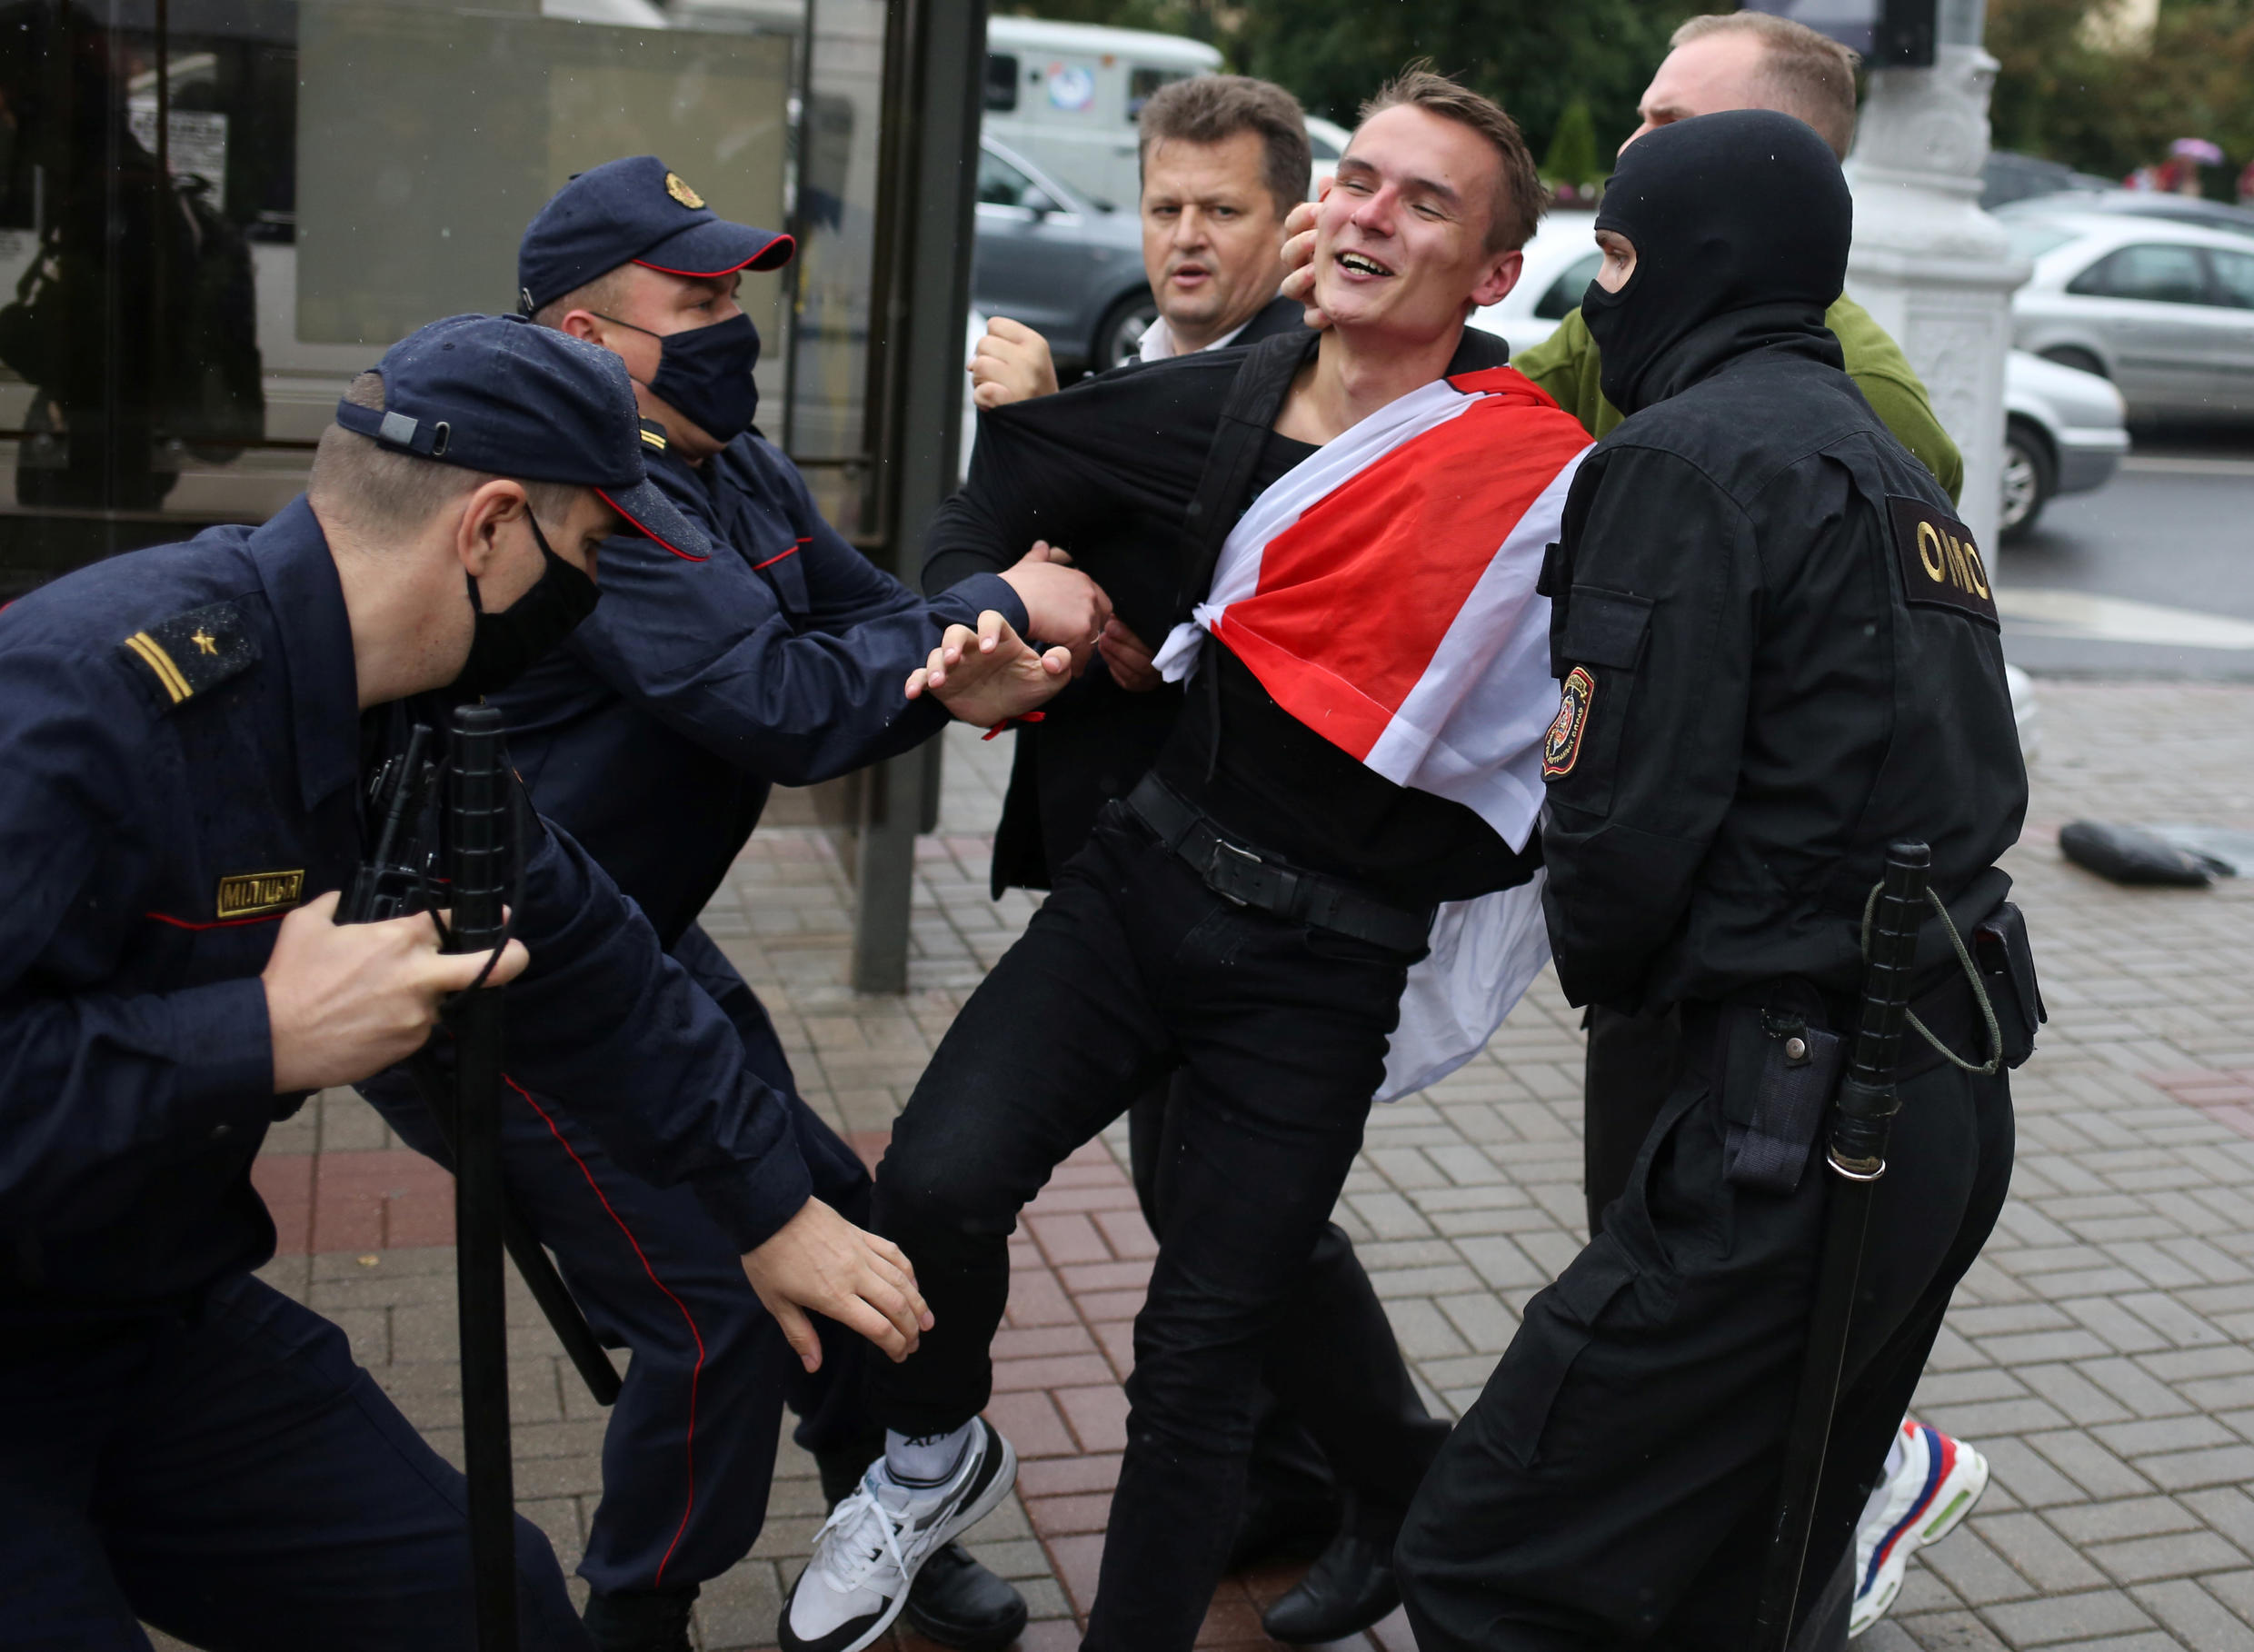 2020-09-01T114042Z_1662086532_RC2NPI95YC9Y_RTRMADP_3_BELARUS-ELECTION-PROTESTS-STUDENTS